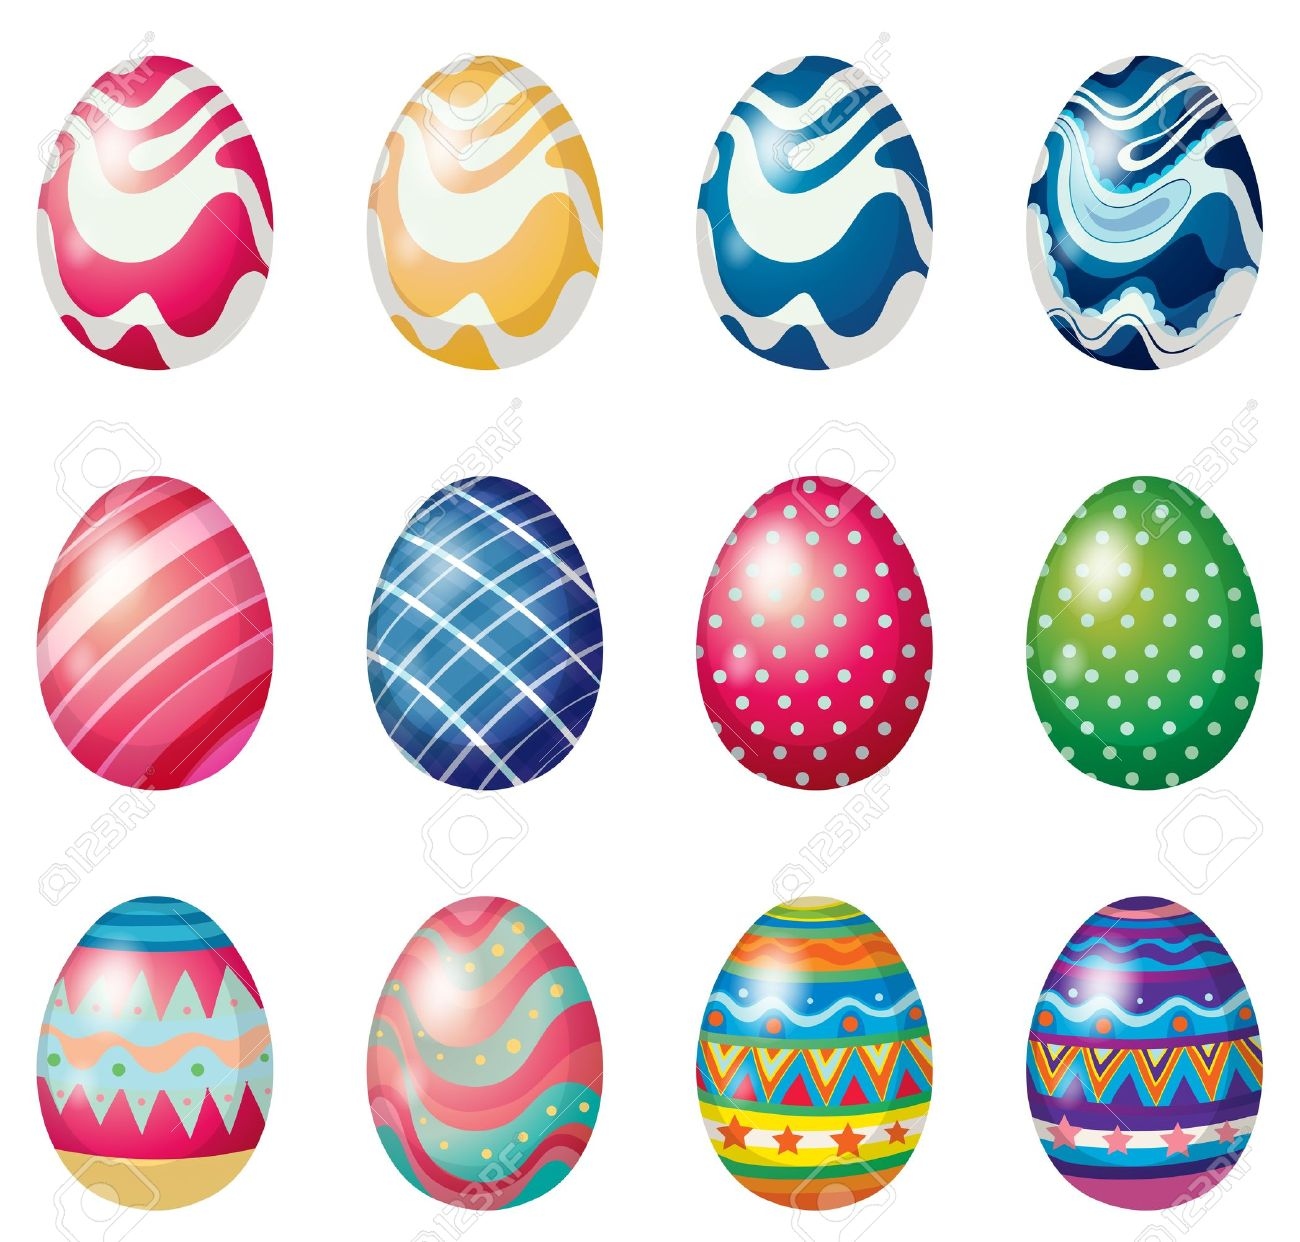 9,174 Easter Eggs Hunt Stock Vector Illustration And Royalty Free.